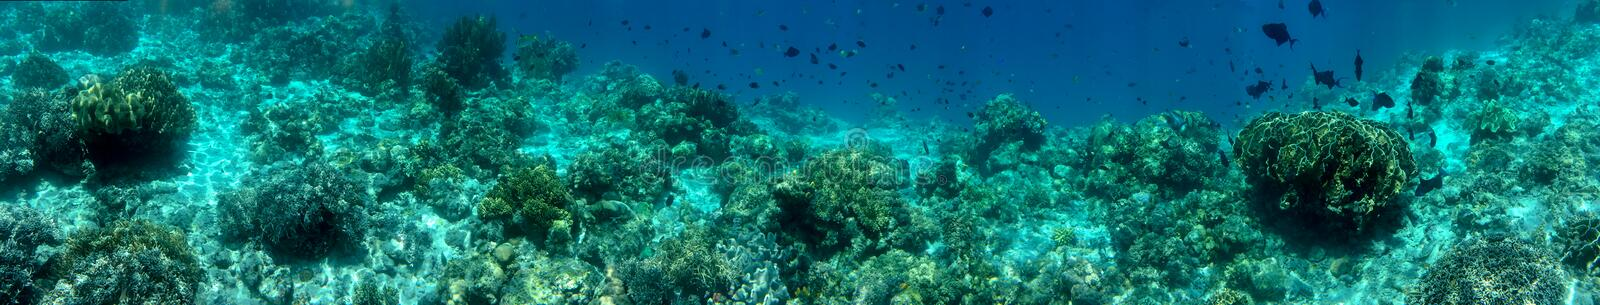 Panorama Coral Reef Scene unter Water stock images